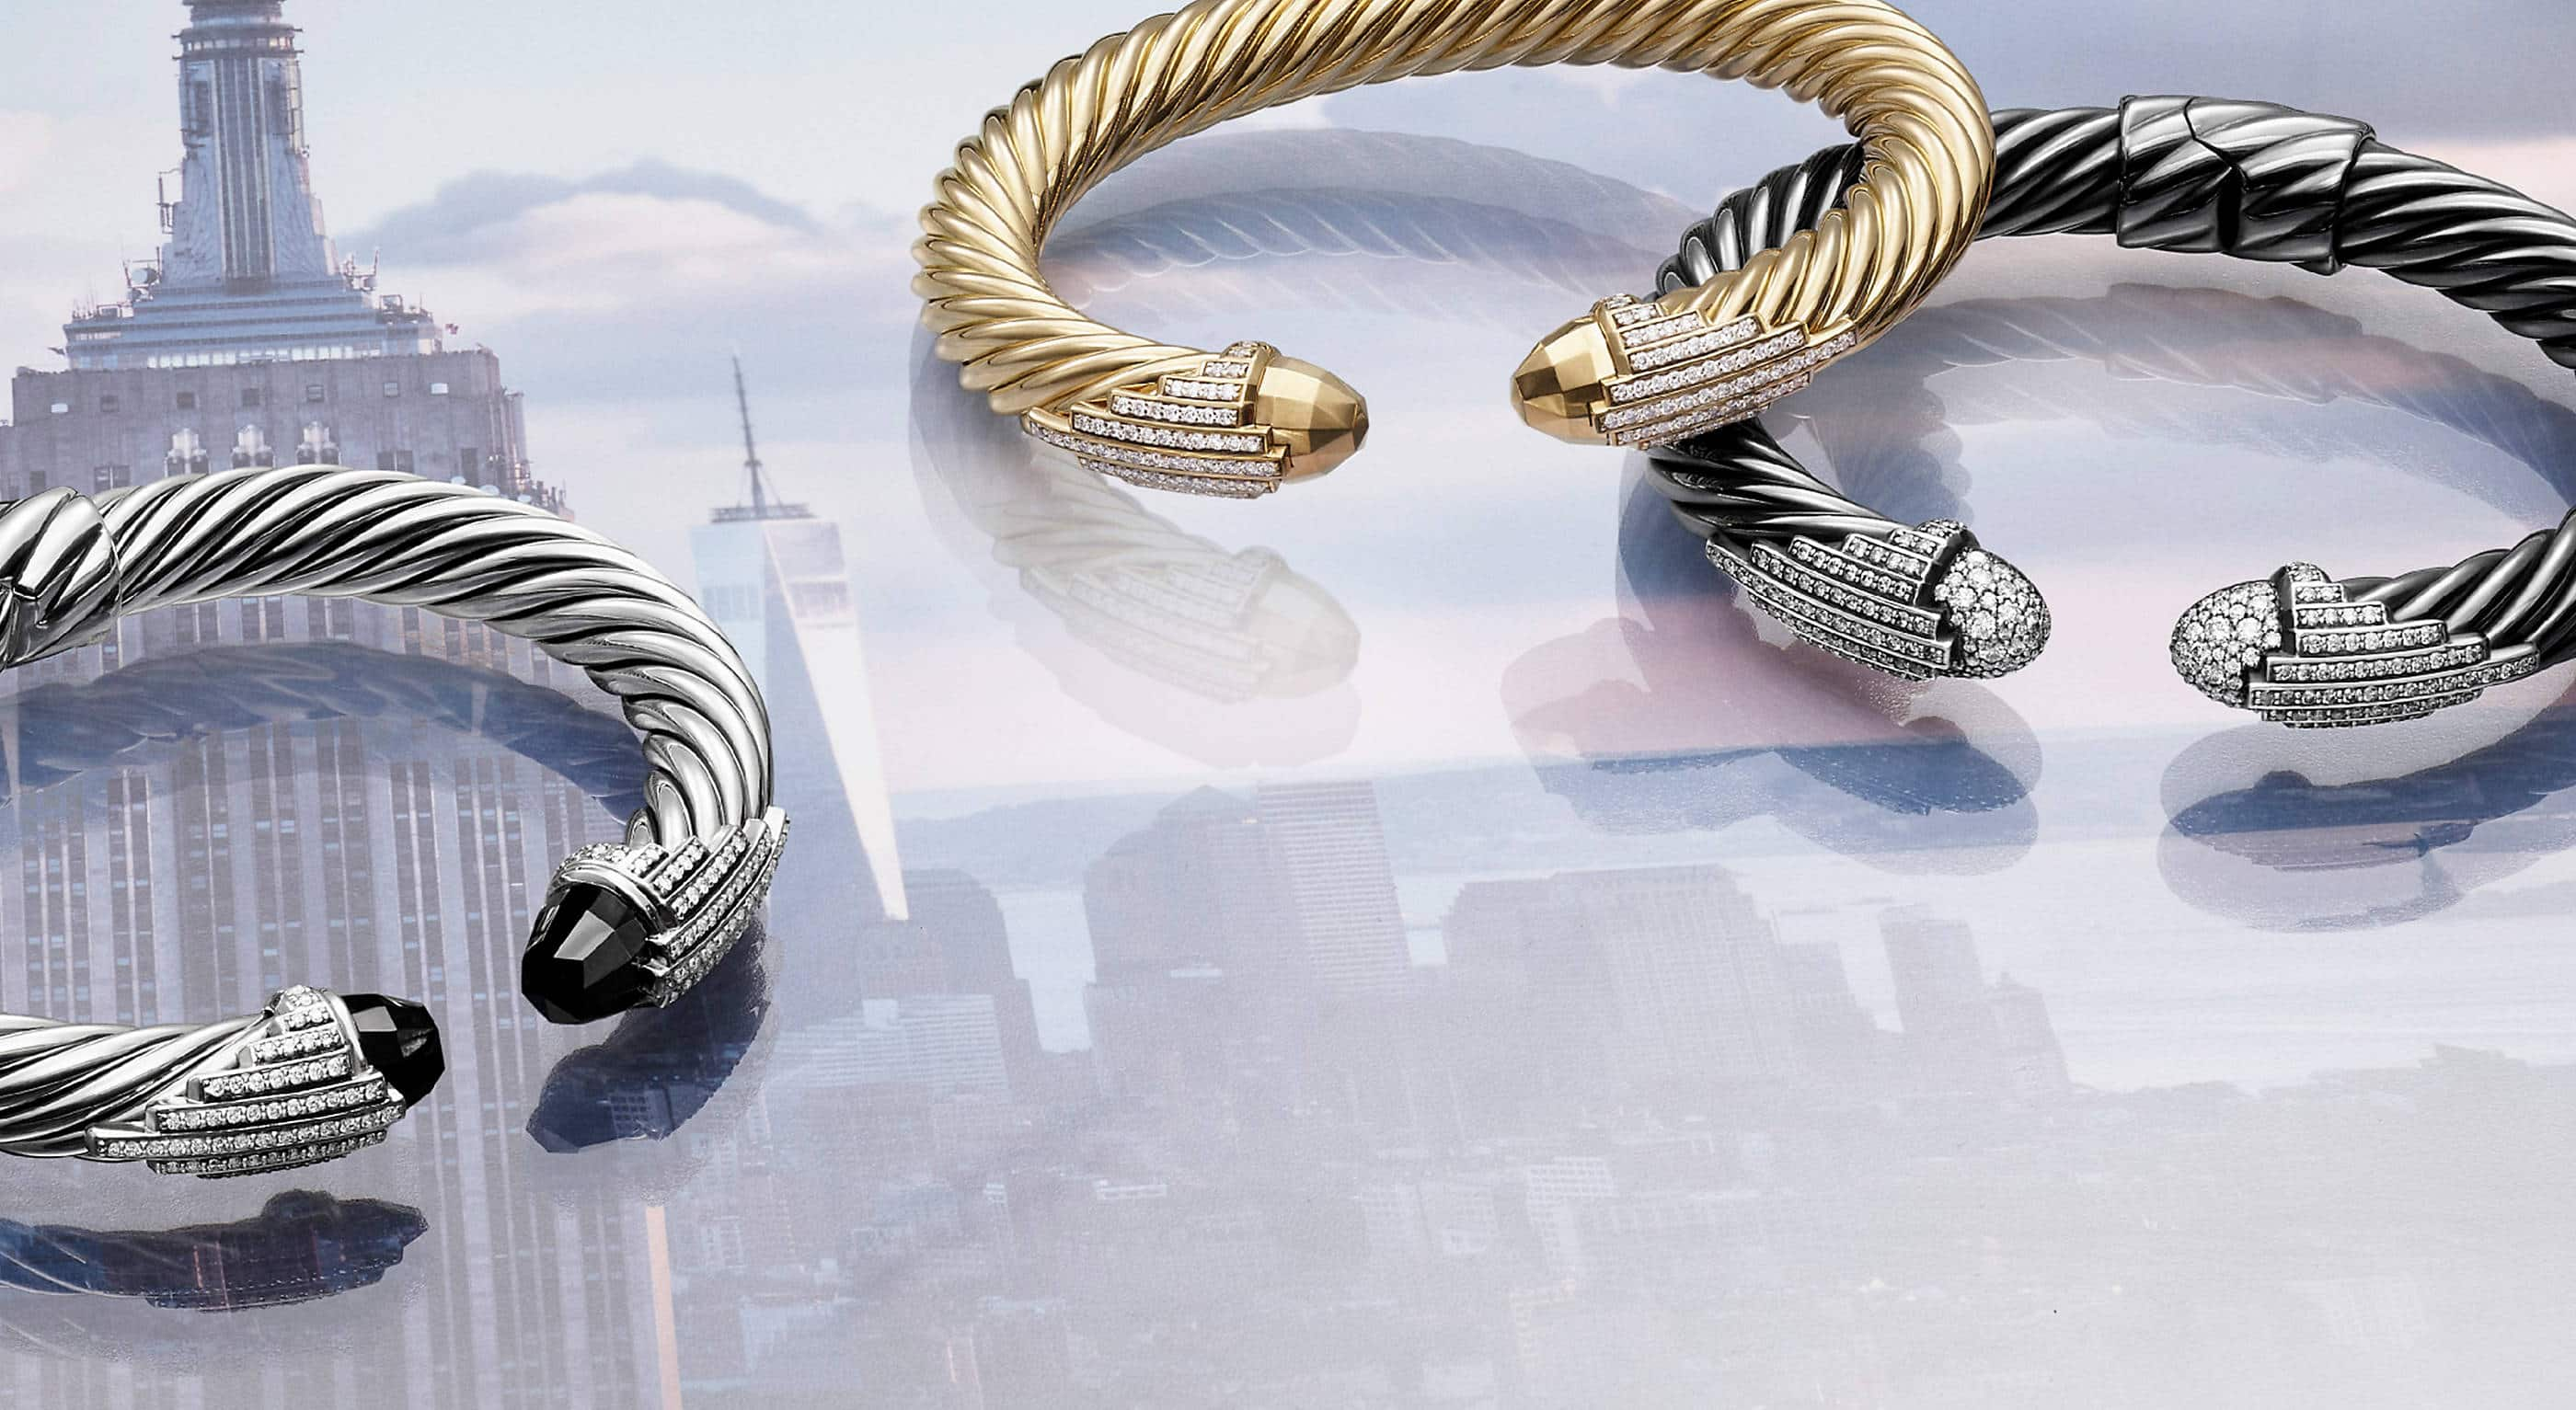 Three David Yurman Empire Collection Cable bracelets over a soft-focus photo of the top of the Empire State Building. The jewelry is crafted from sterling silver with or without black onyx or pavé diamond end caps.